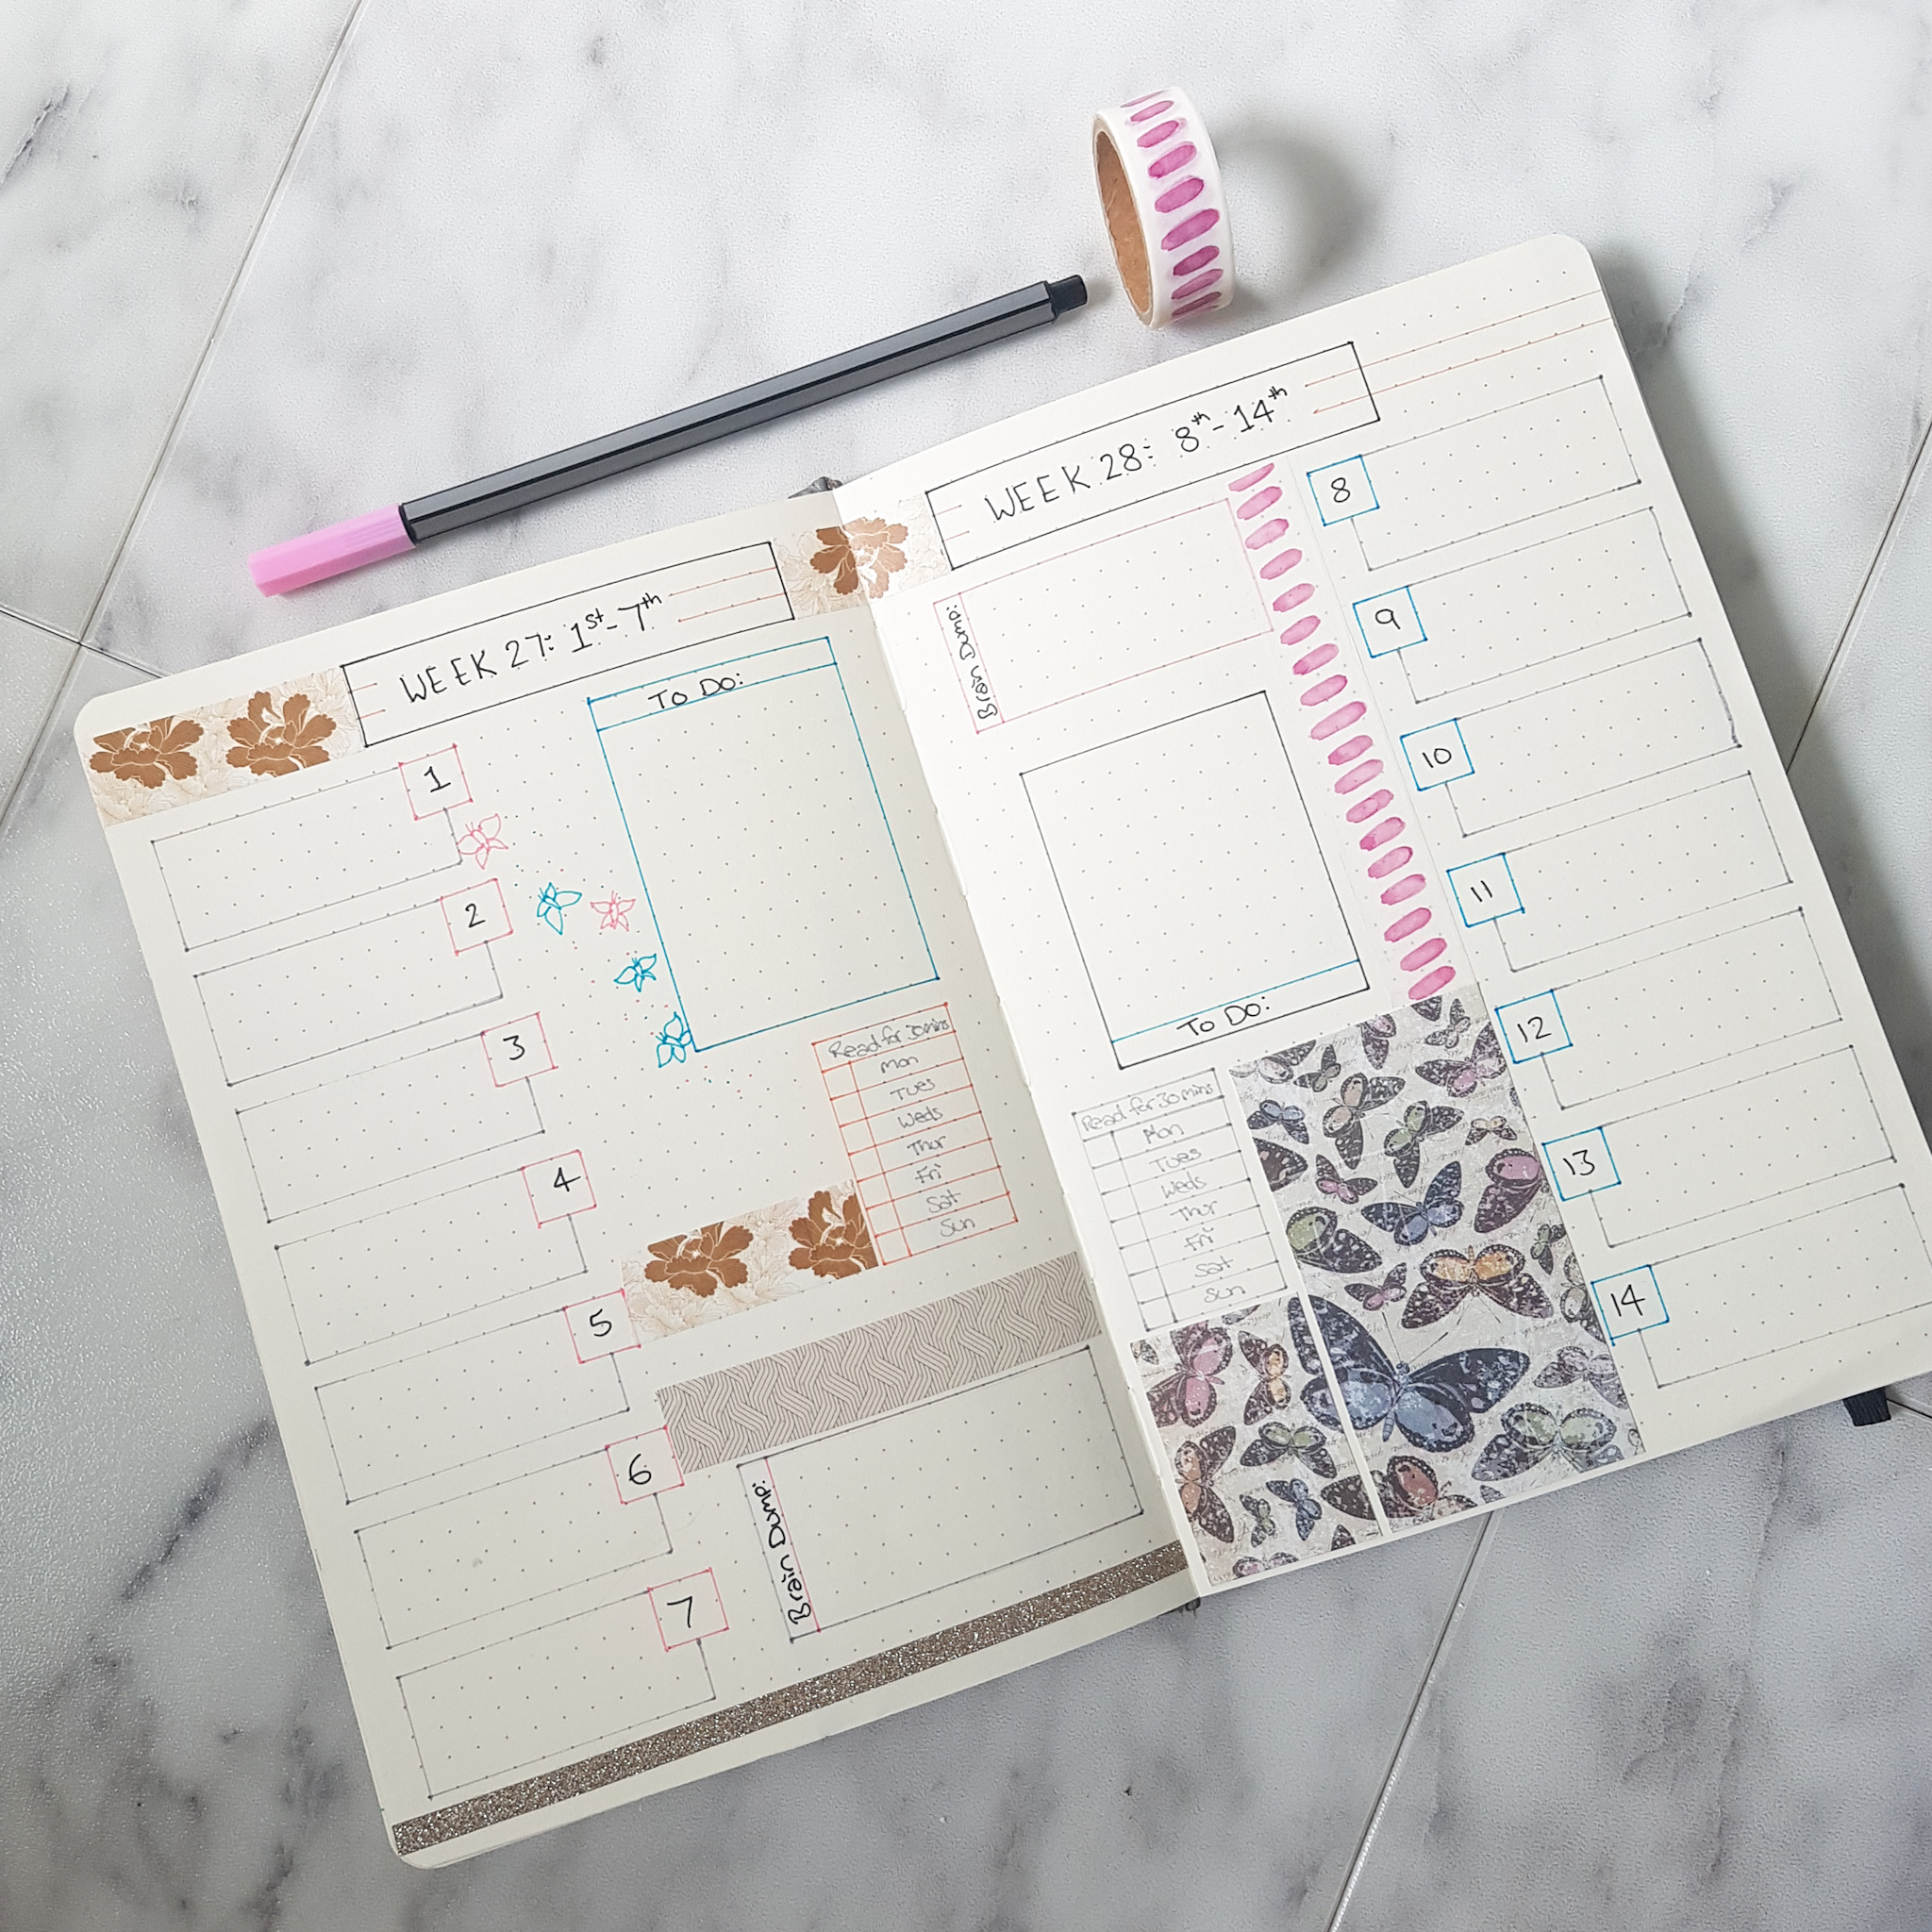 https://talilifestyle.com/2019/07/11/bullet-journal-july/